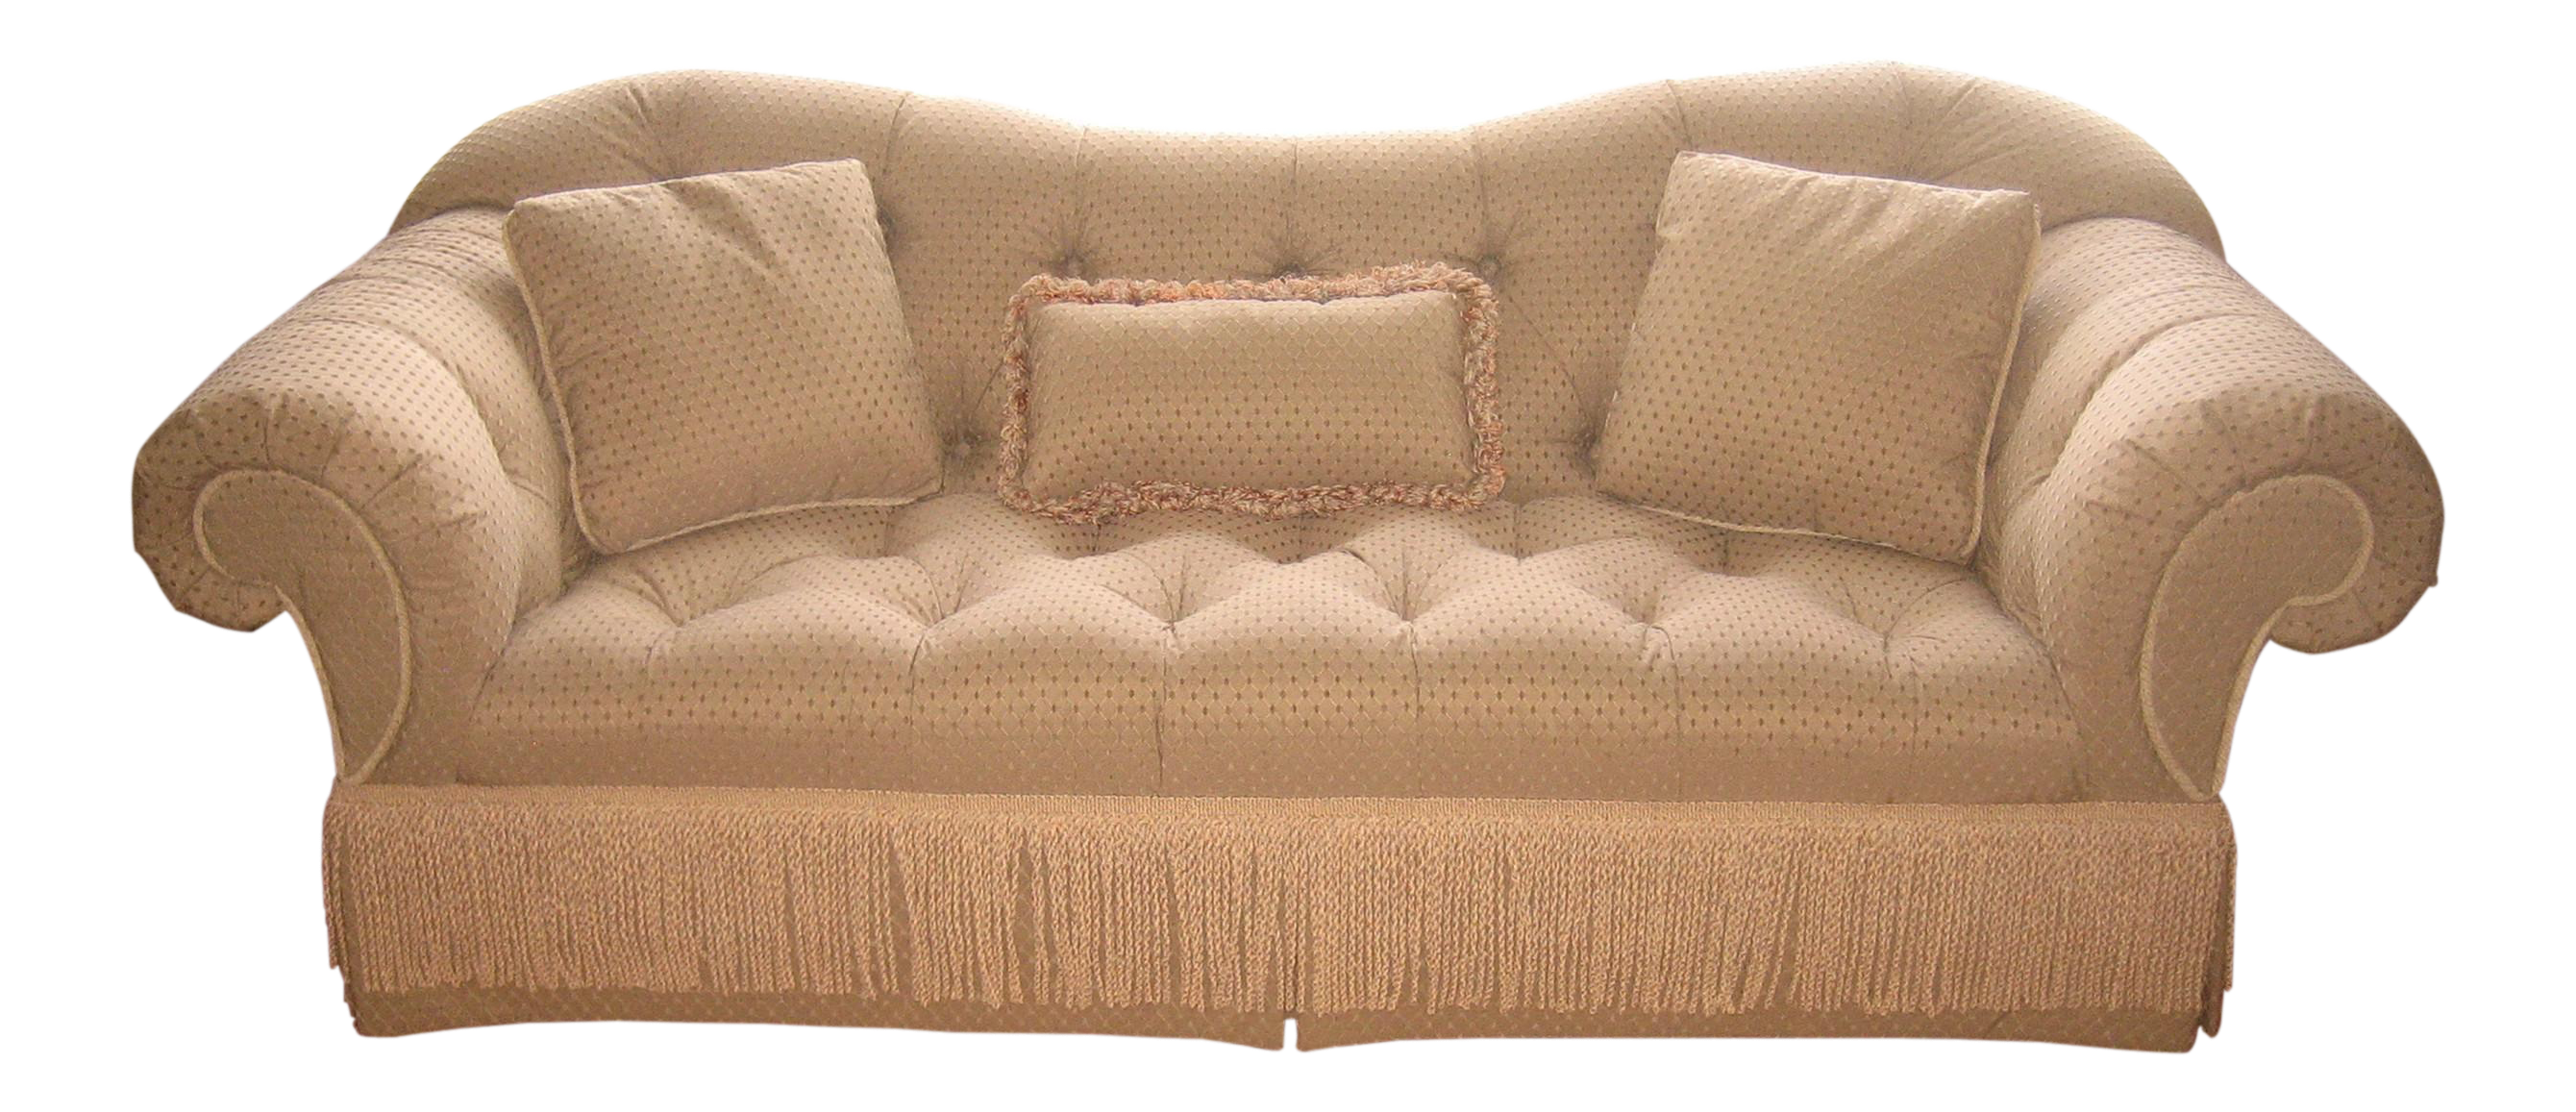 Drexel Heritage Traditional Style Sofa For Sale